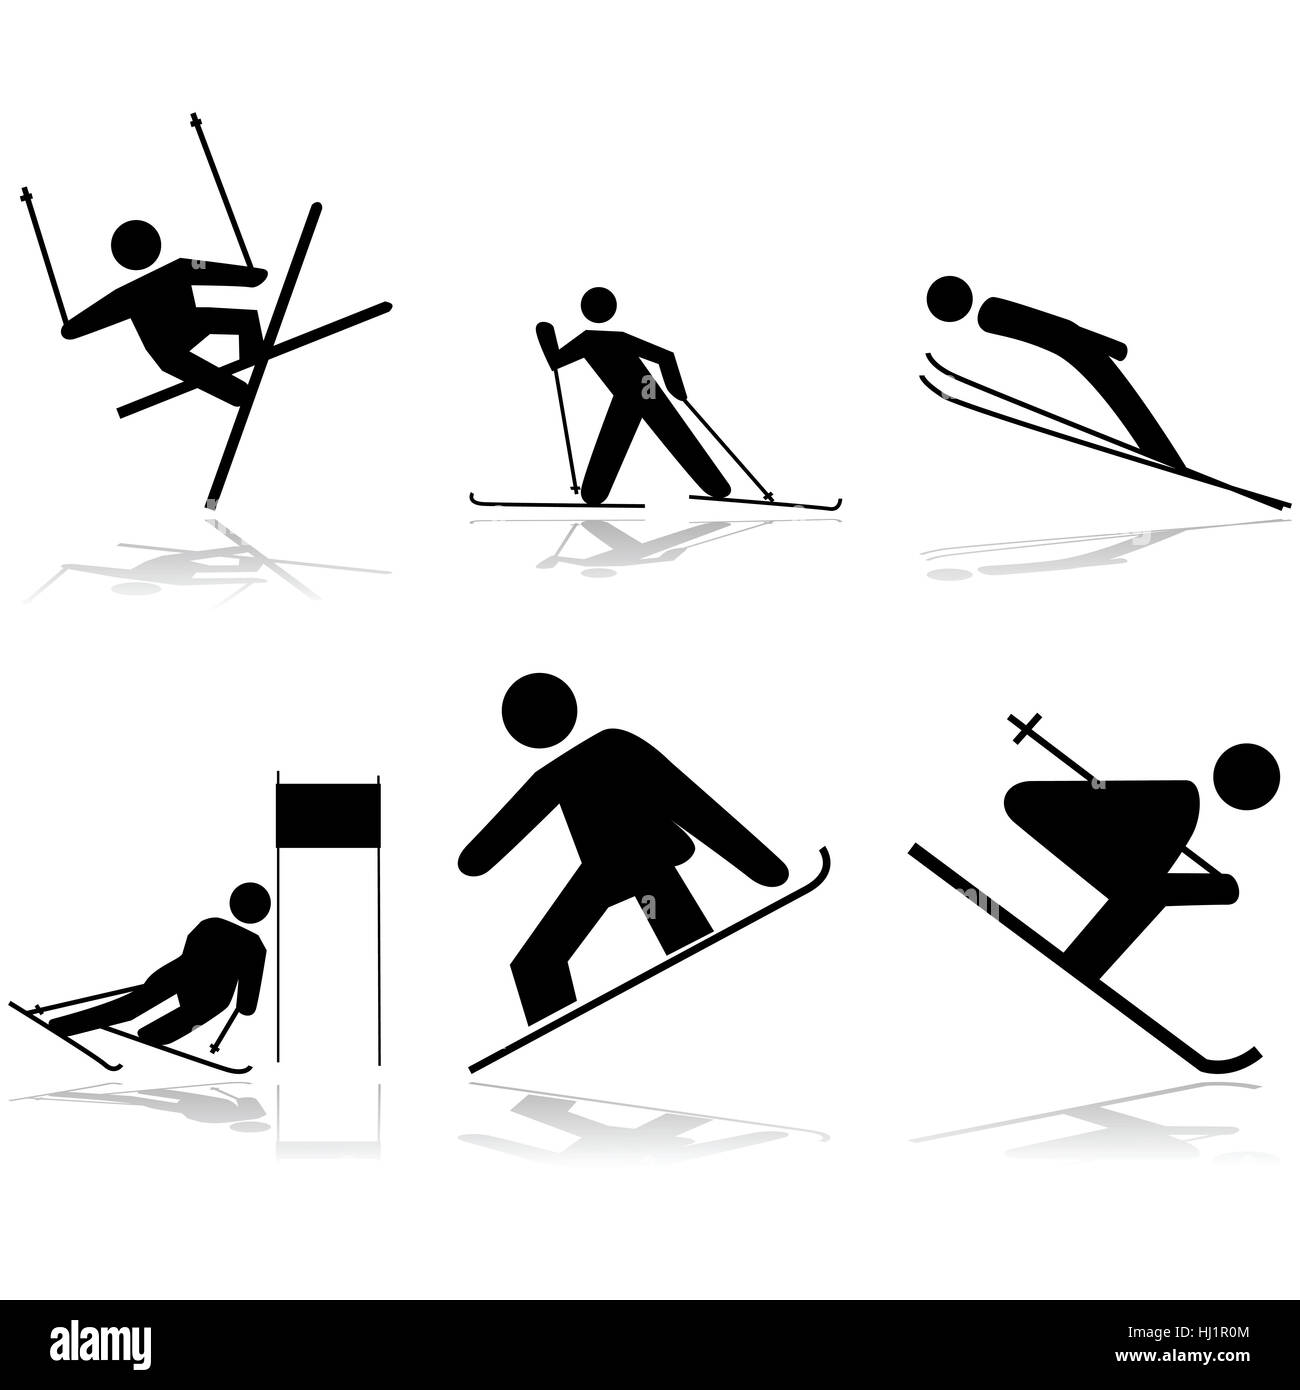 danger, game, tournament, play, playing, plays, played, risk, winter, graphic, - Stock Image